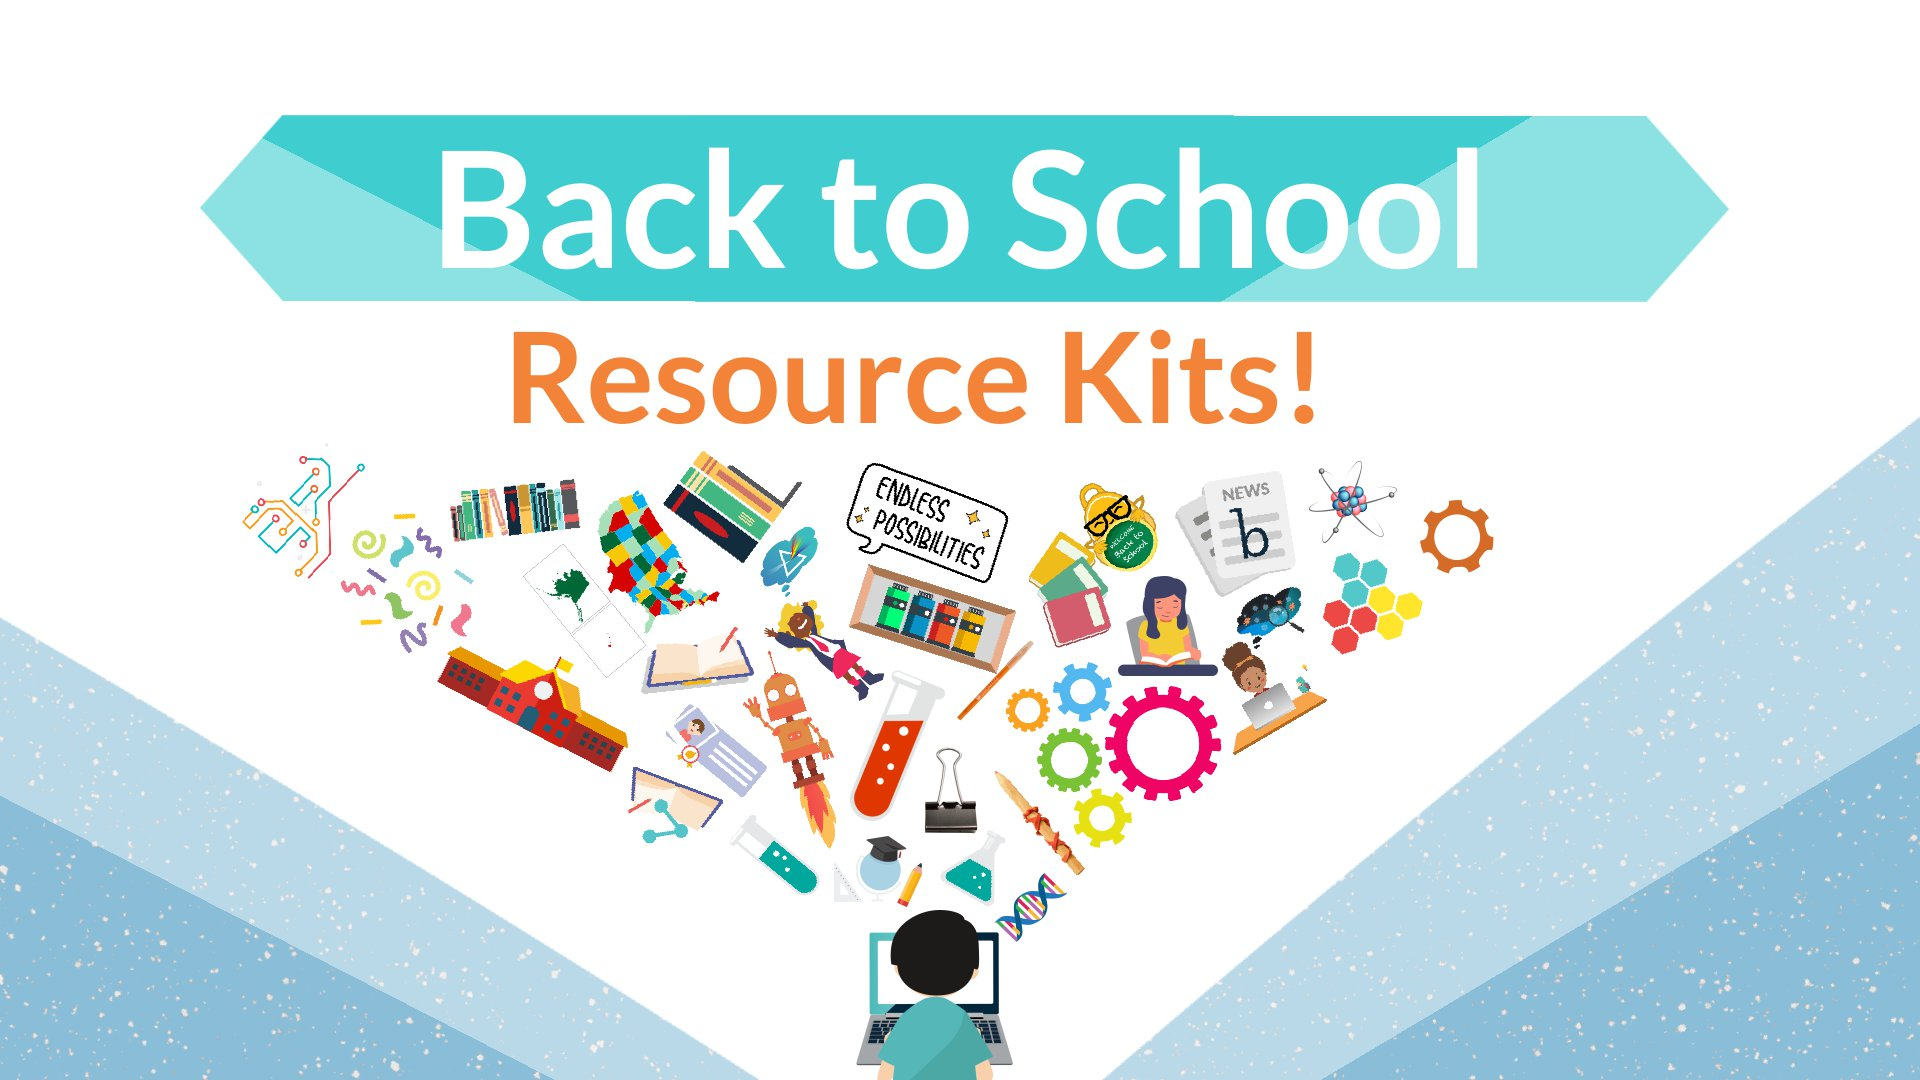 Back to School Resource Kits